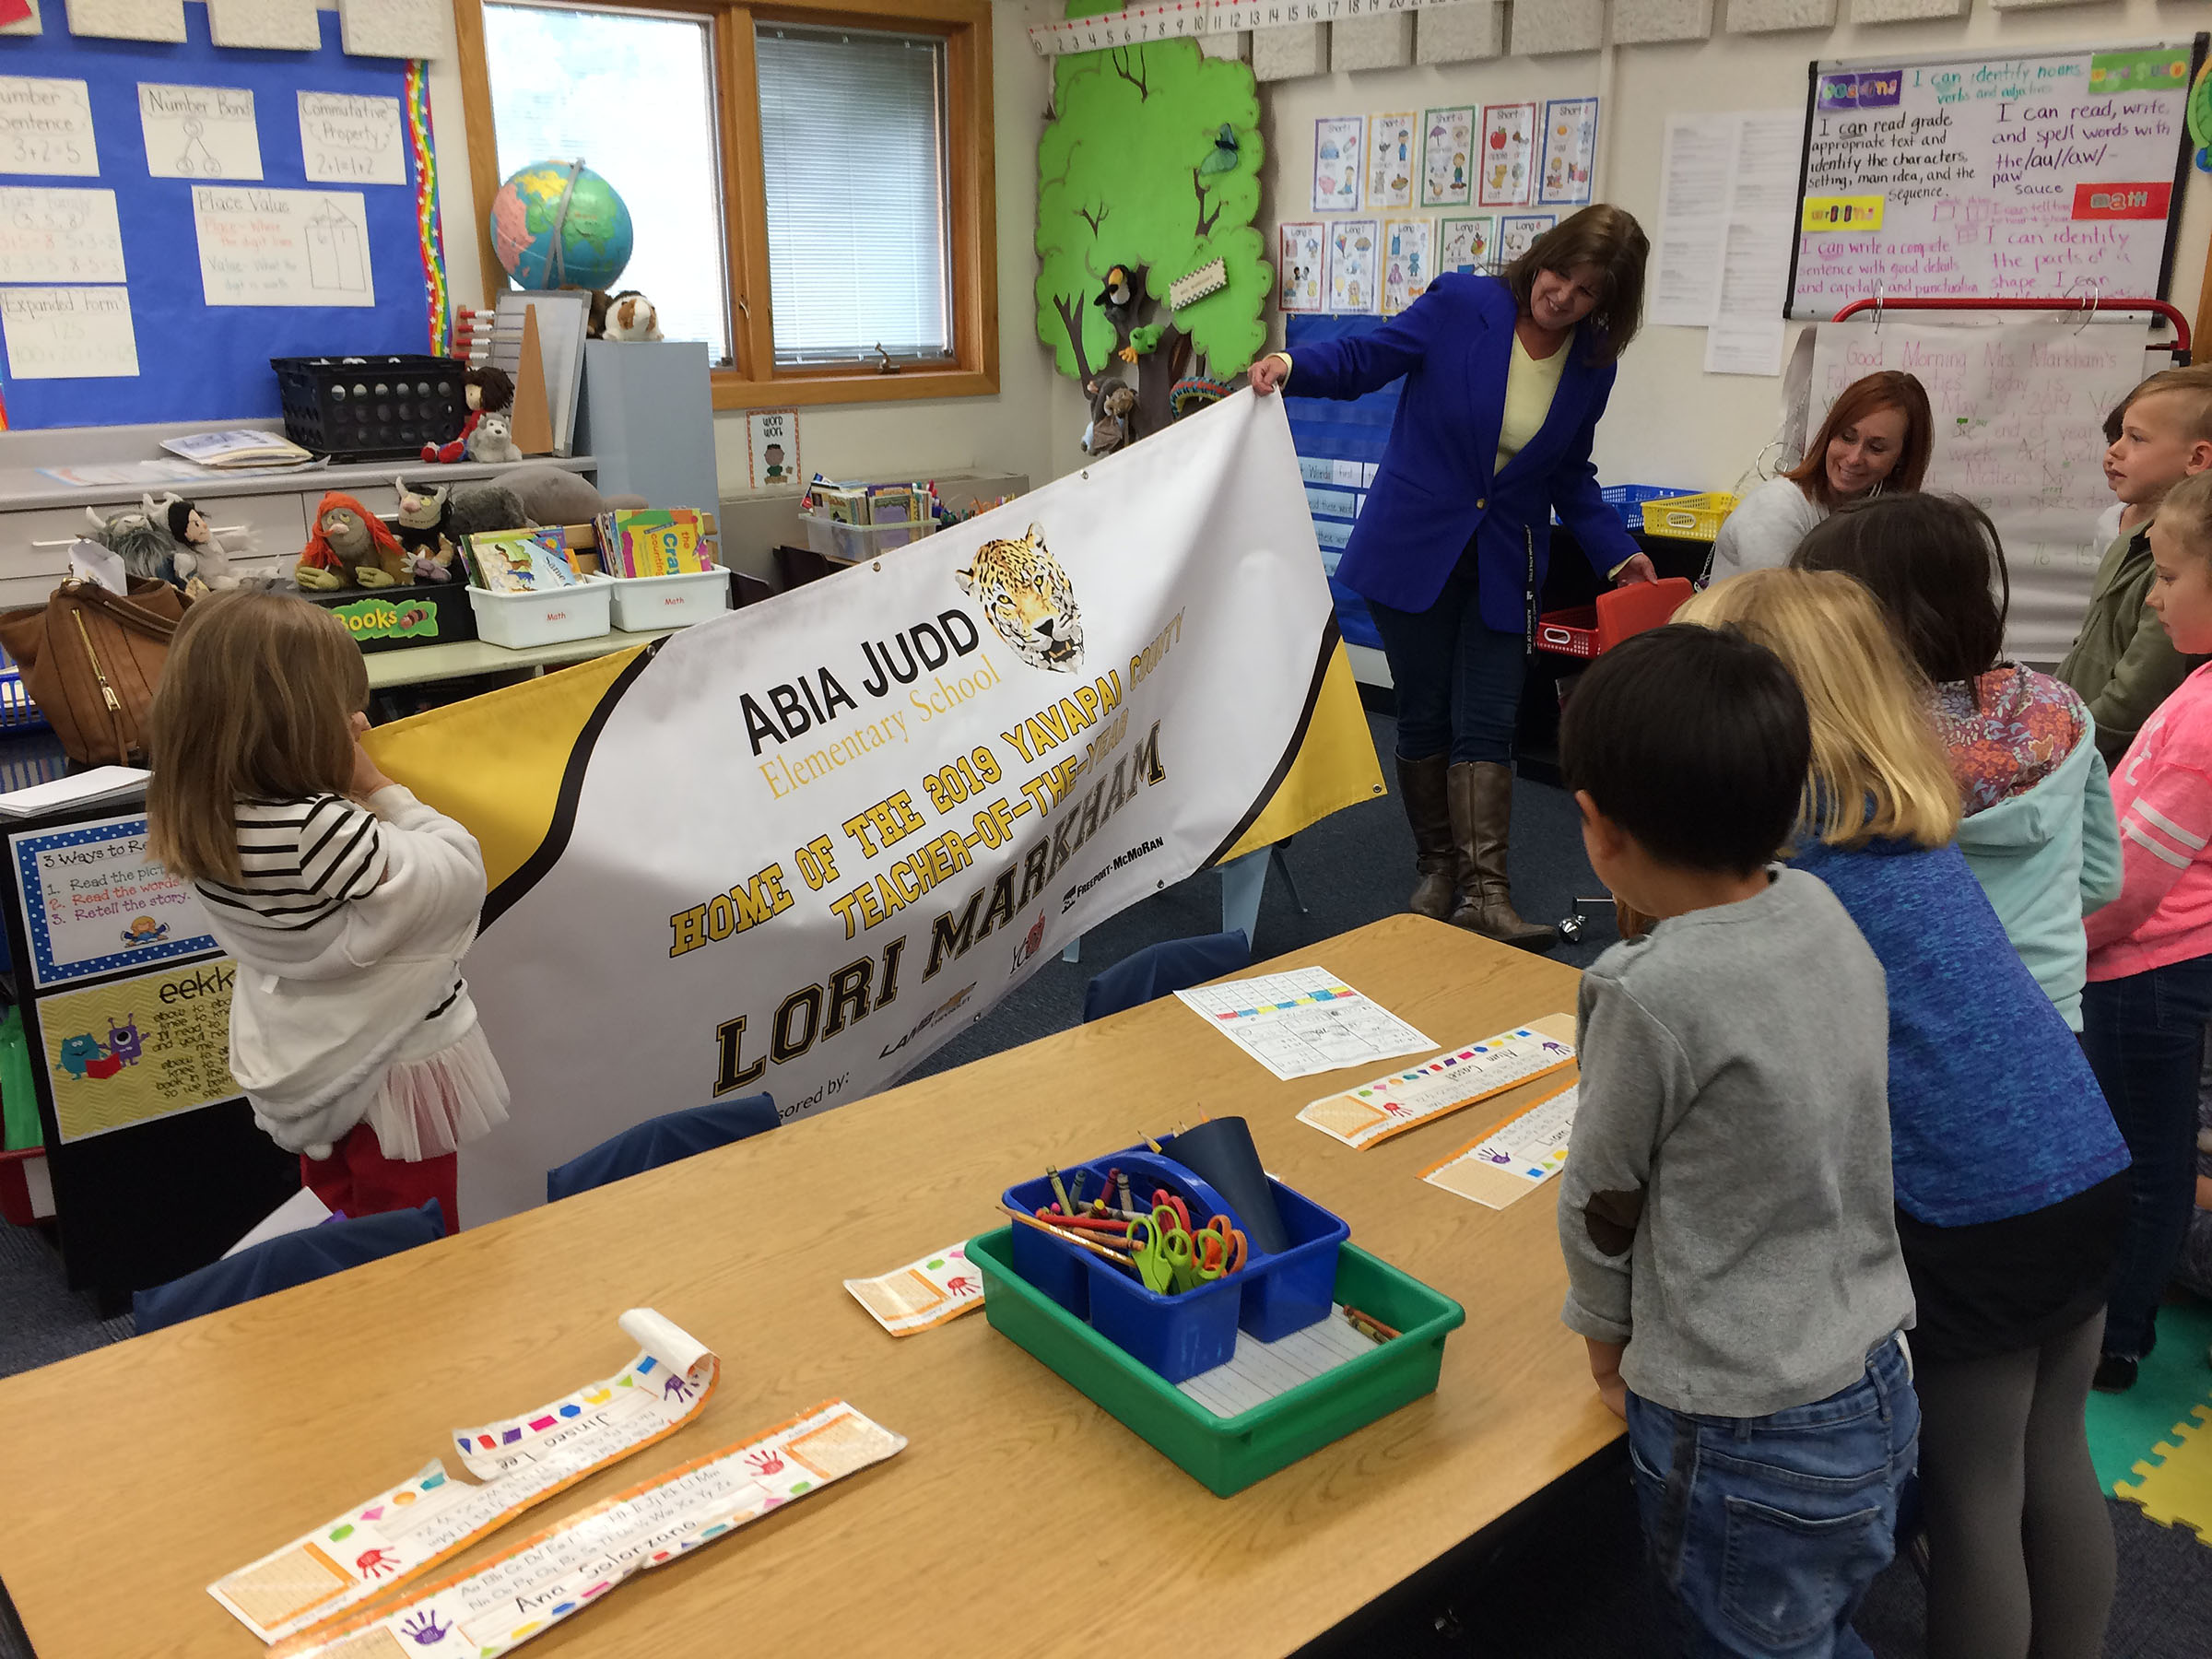 Early inspiration leads to career in classroom